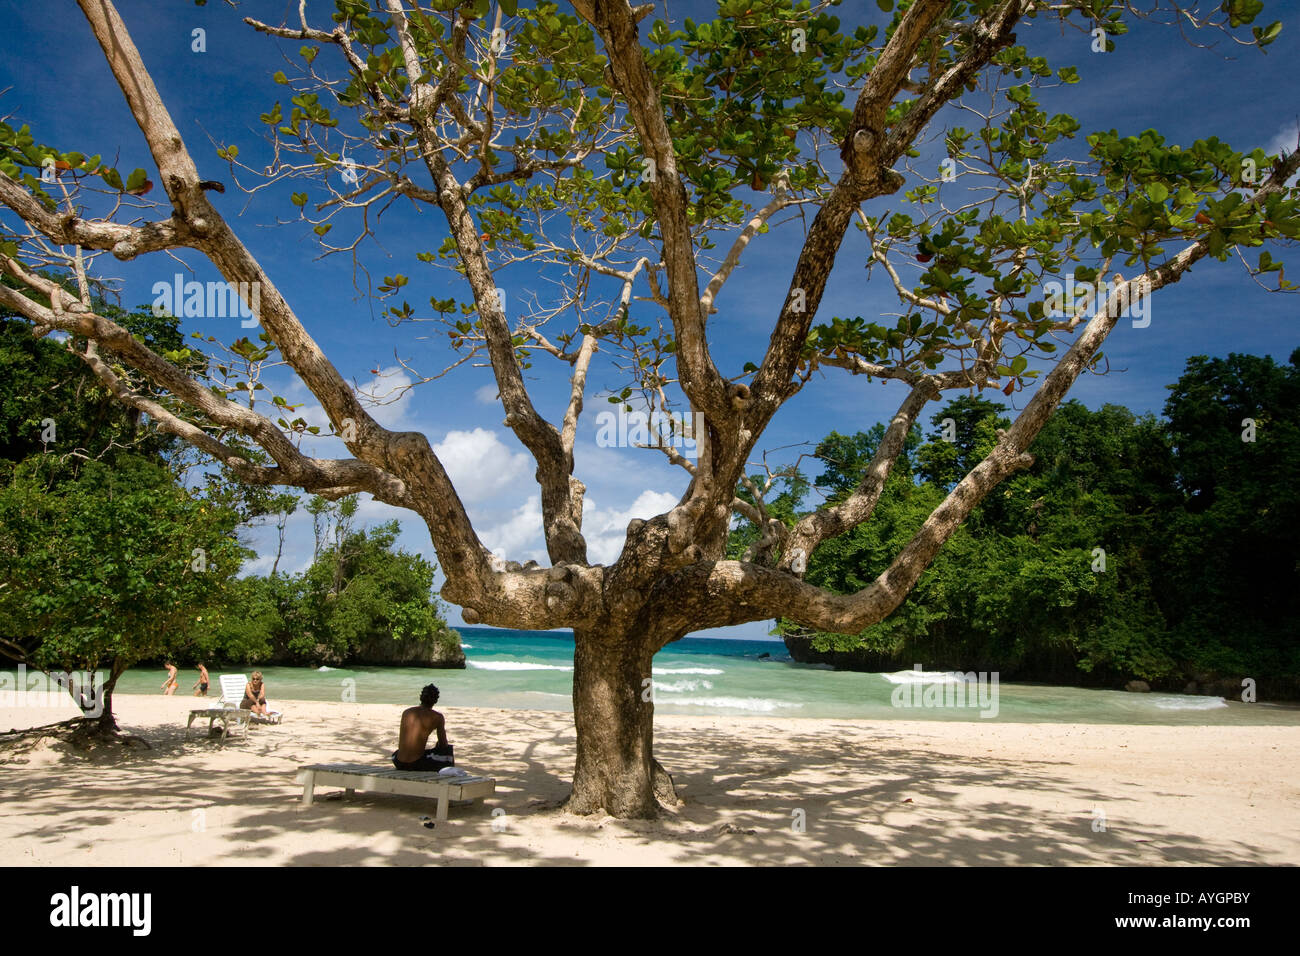 Jamaica Port Antonio Frenchmens Cove beautiful beach in a tropical garden with a mineral river Stock Photo